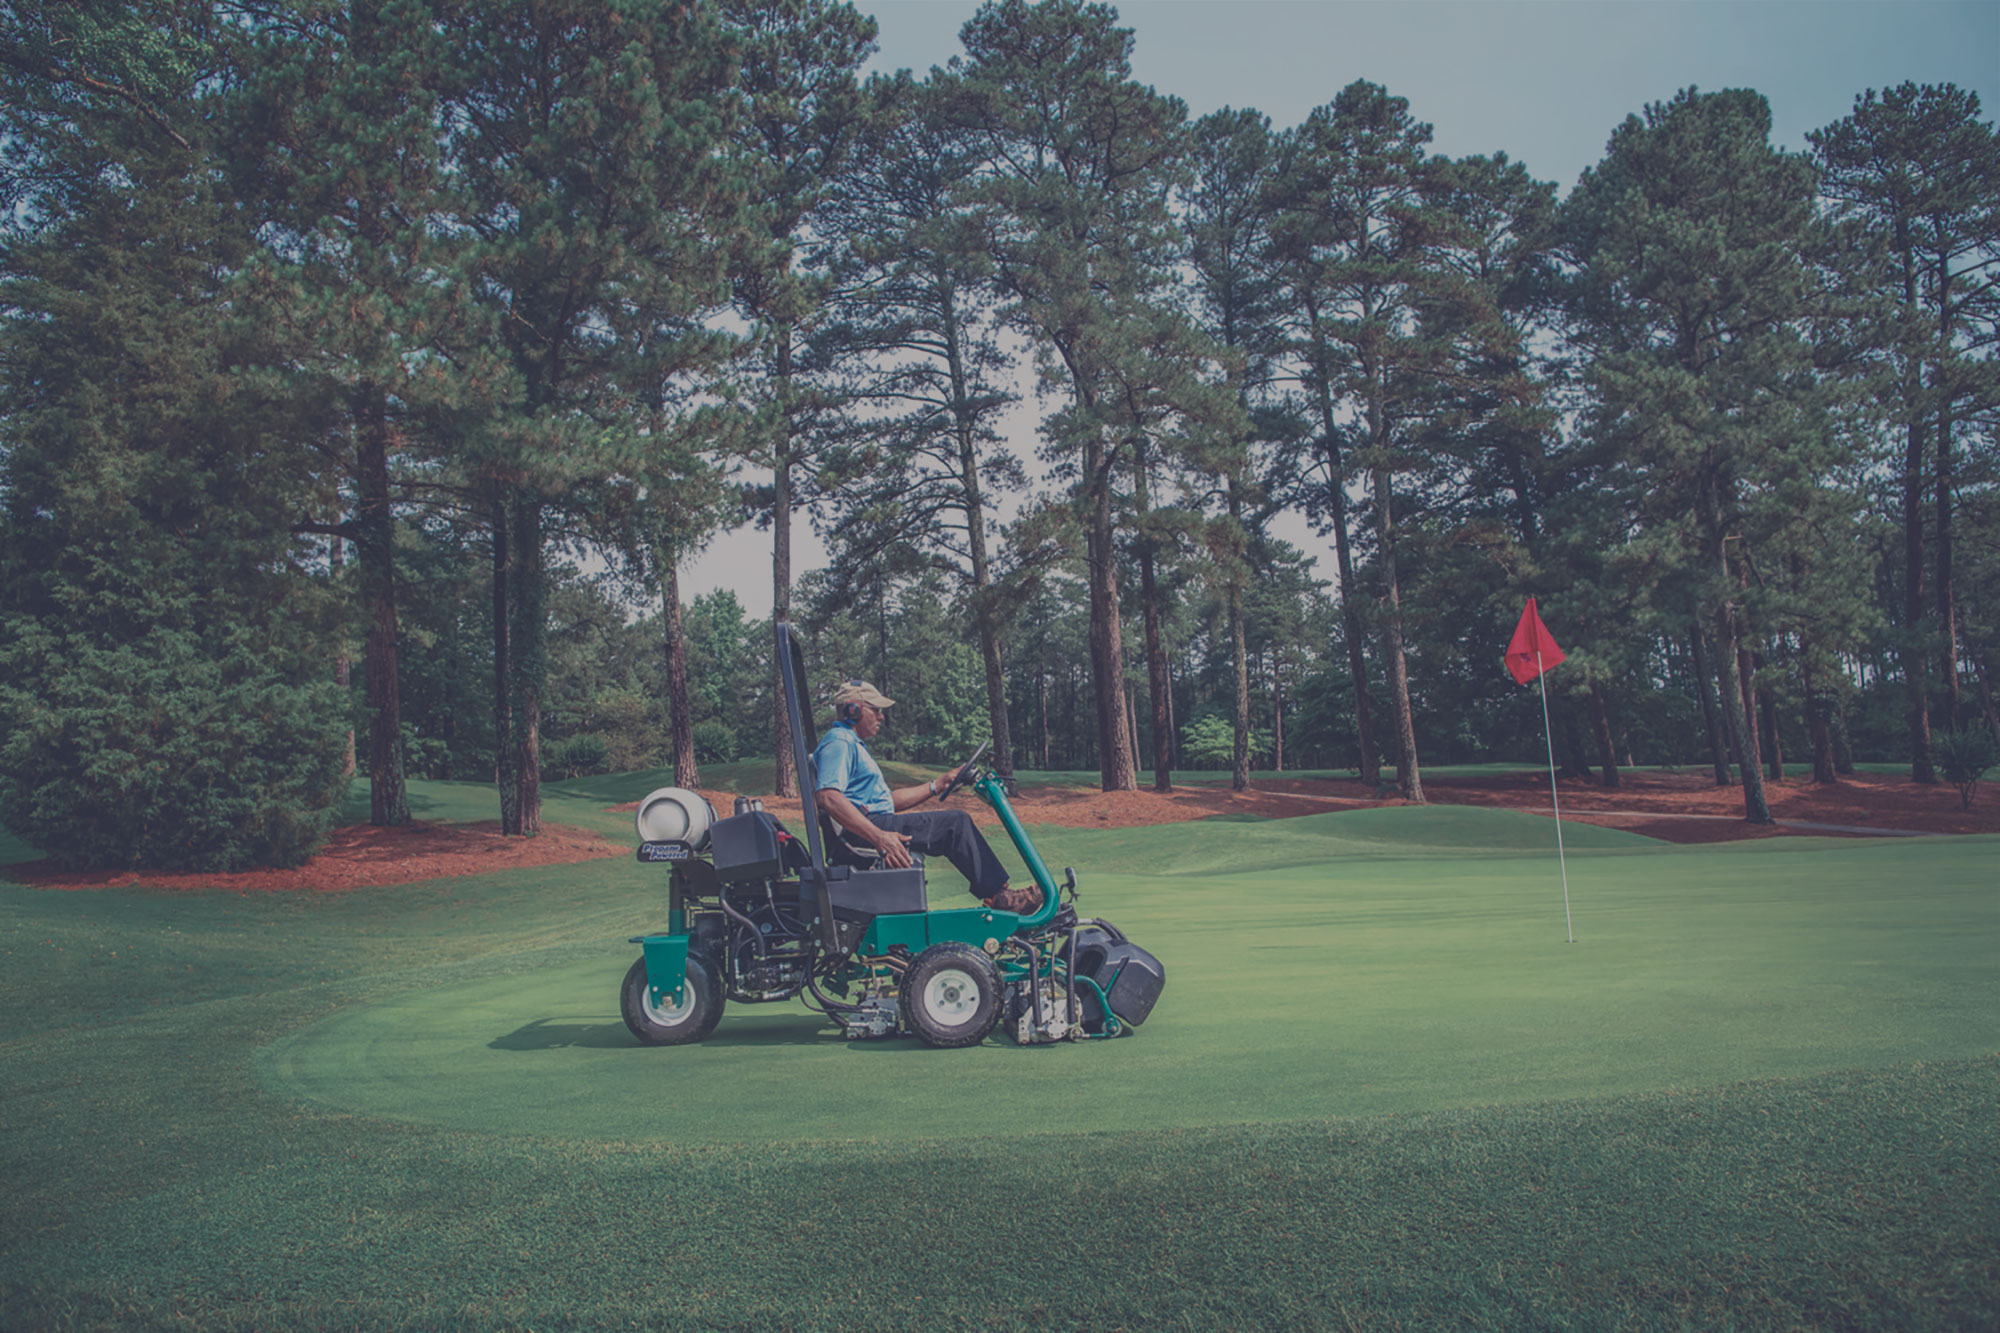 A man driving a propane-powered riding lawn mower at a golf course.